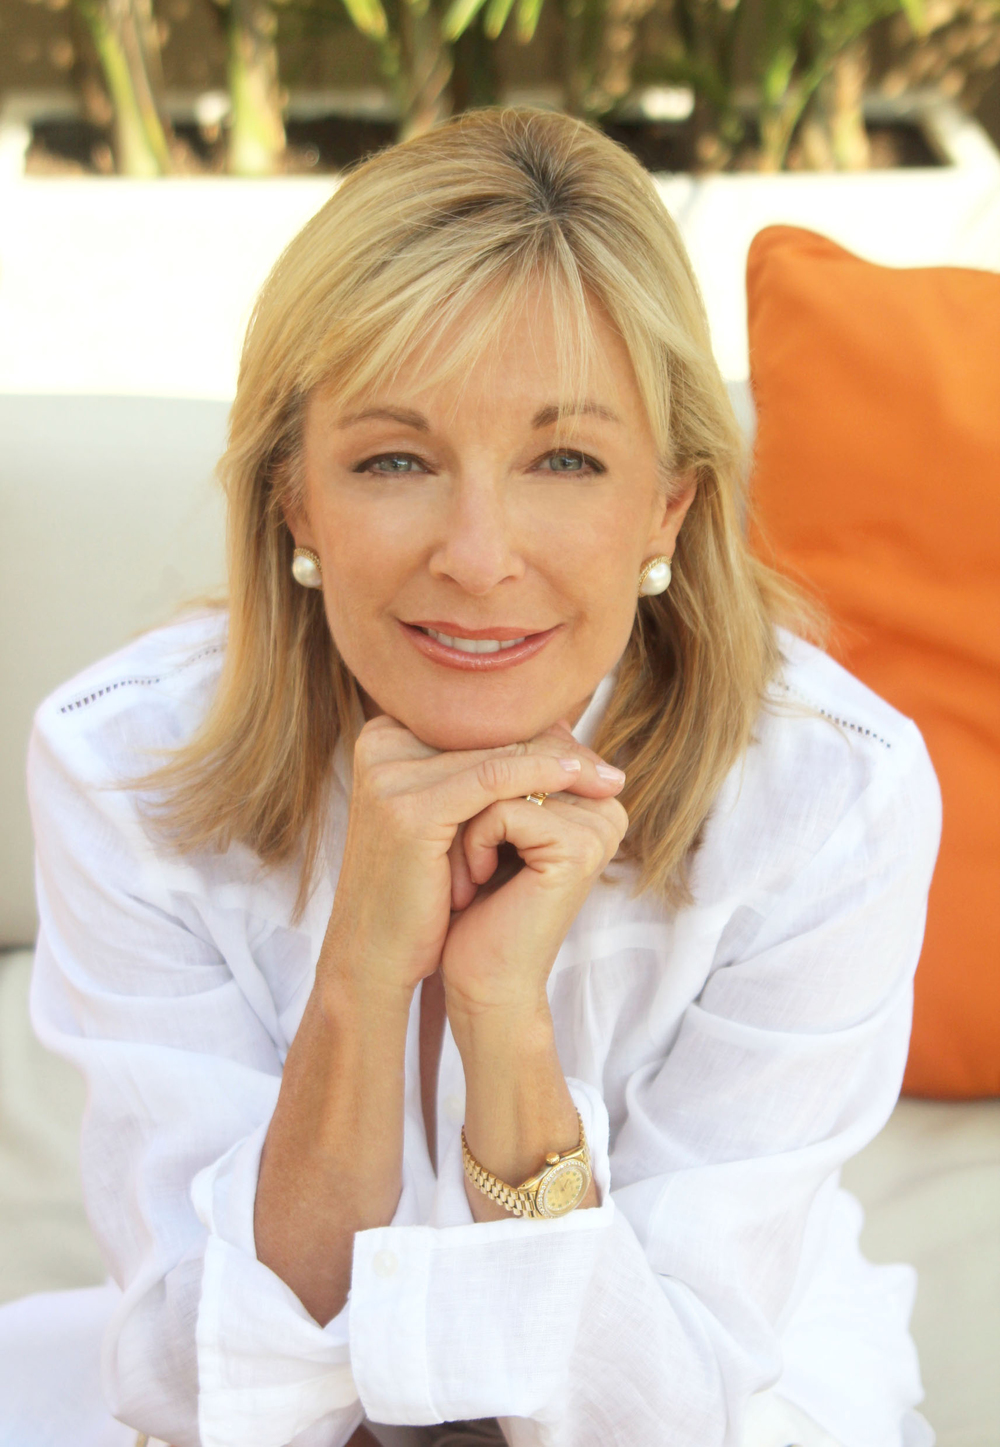 Susie Ellis, Chairman & CEO, Global Wellness Institute